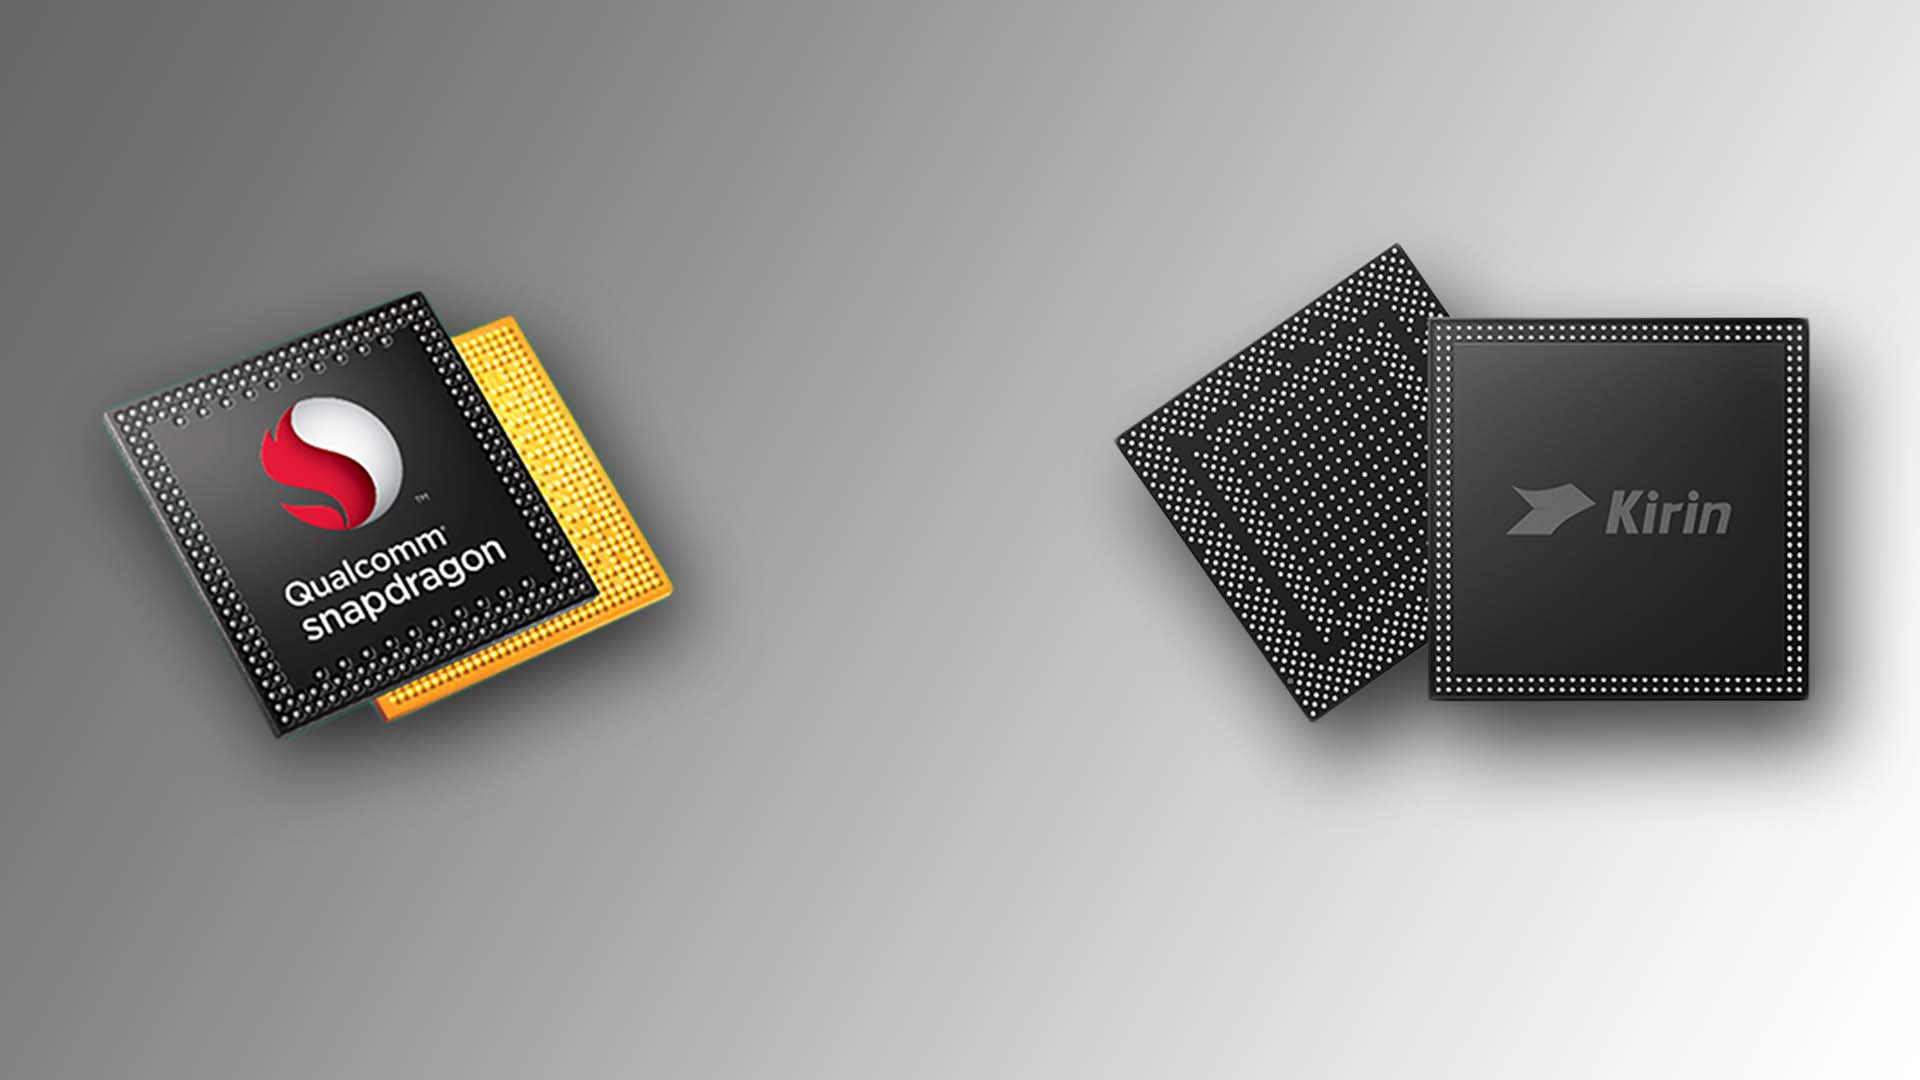 Snapdragon 845 and Kirin 970 Specs Leak Reveal Faster Storage and Memory  Support But Same 10nm FinFET Manufacturing Node